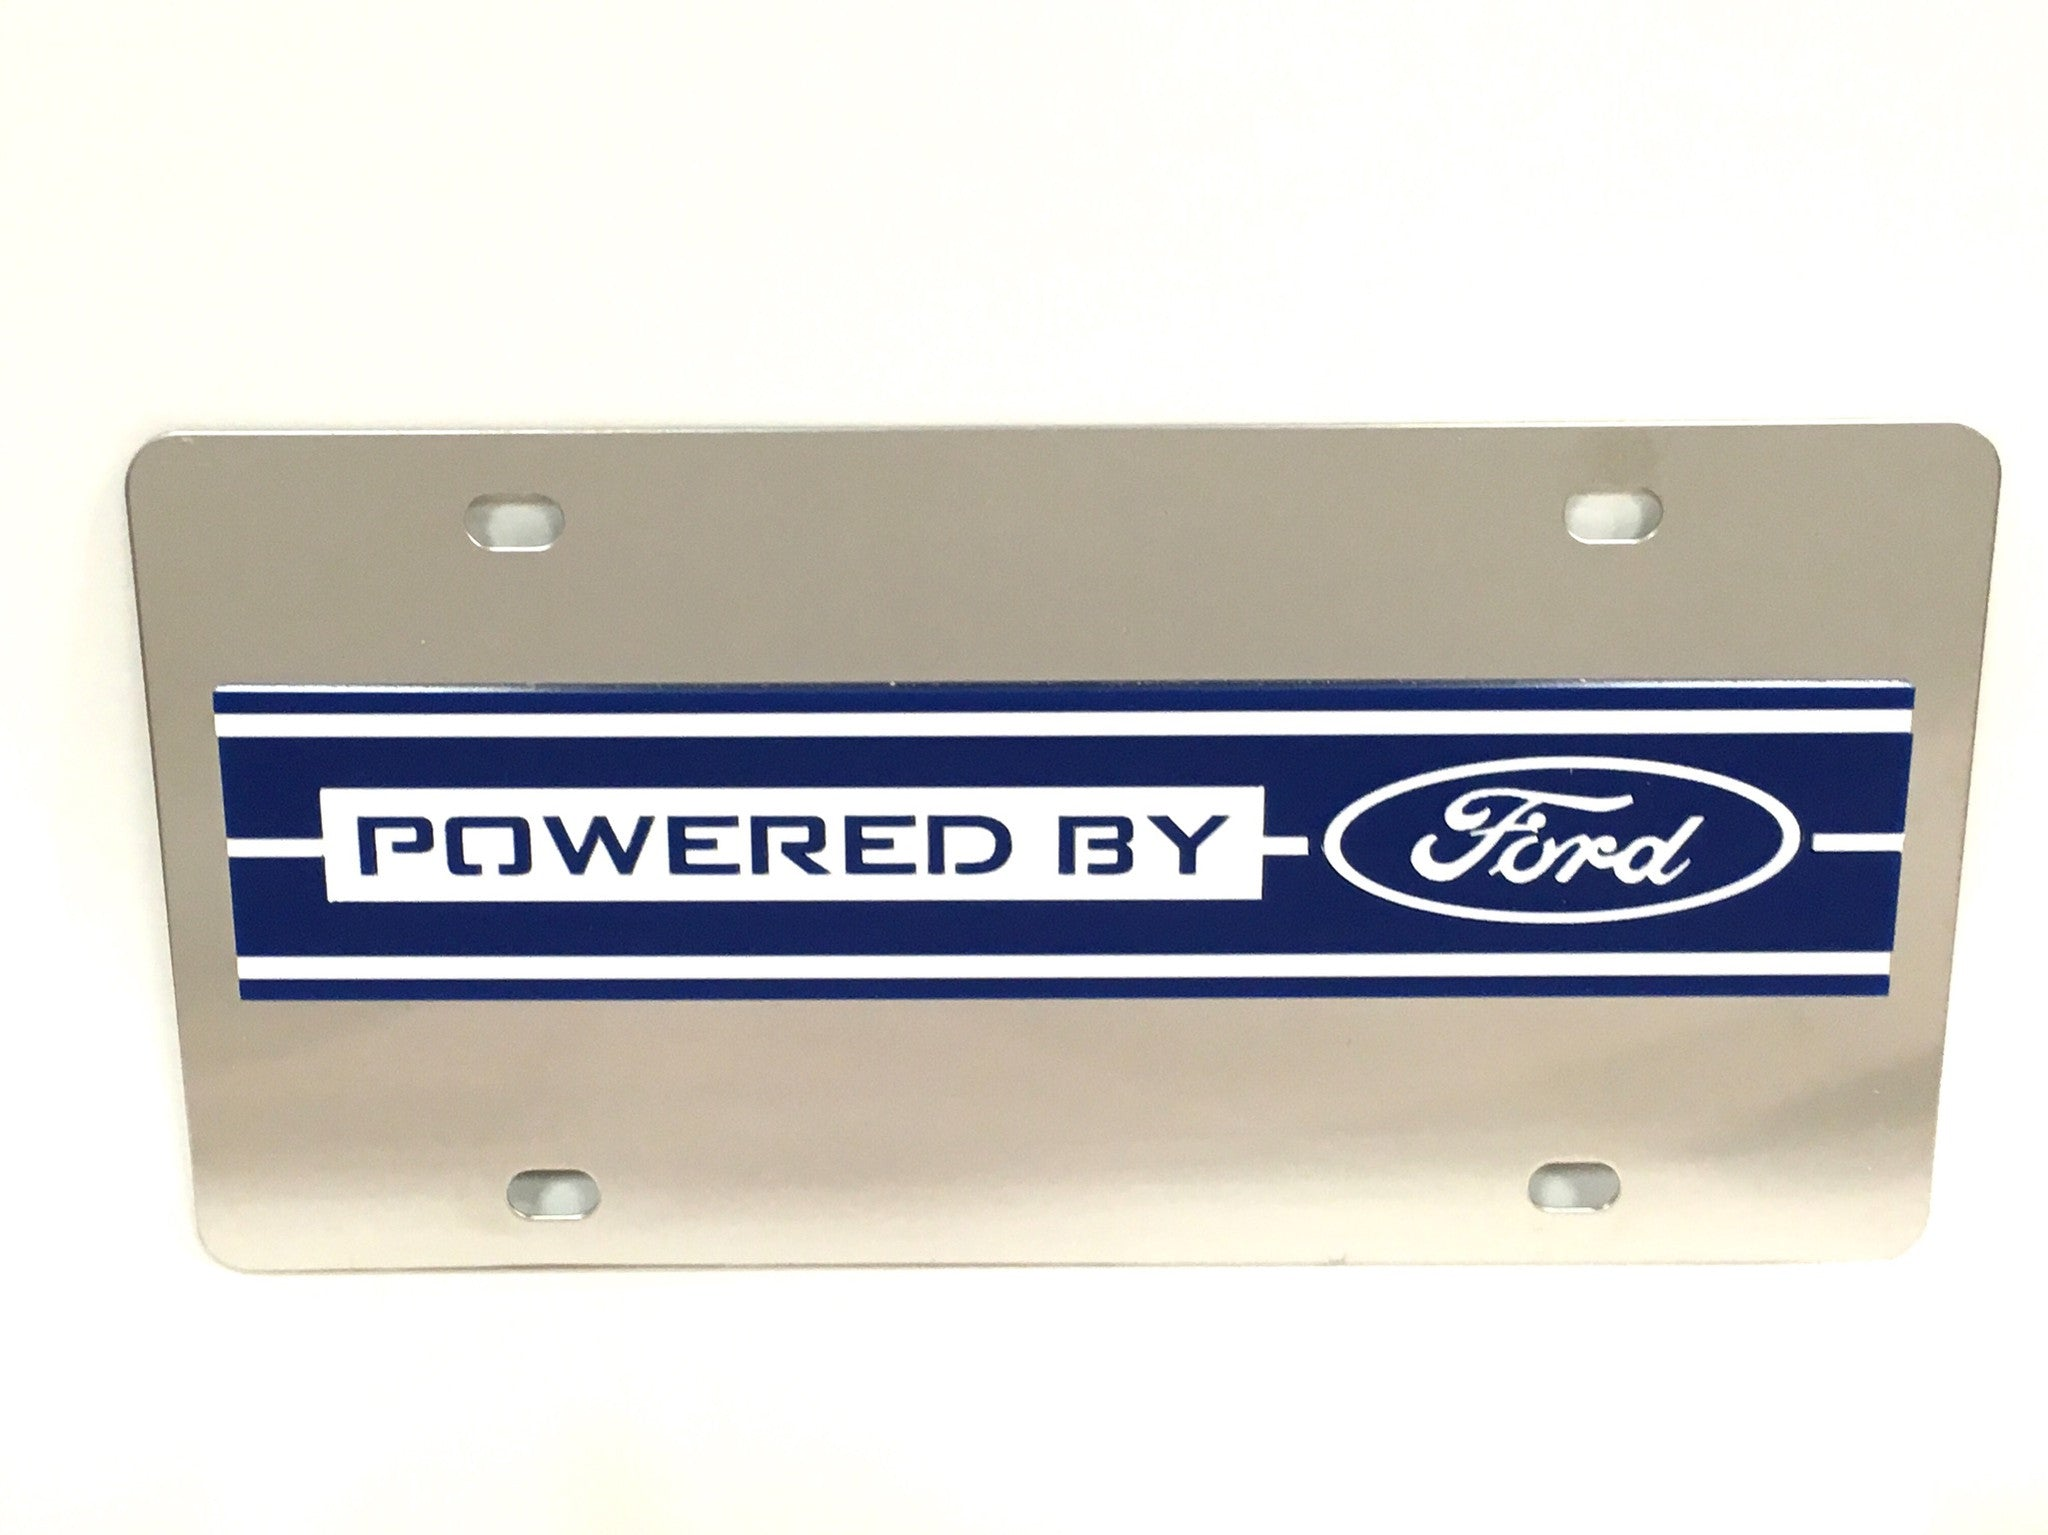 "Ford ""Powered by Ford"" Stainless Steel License Plate"